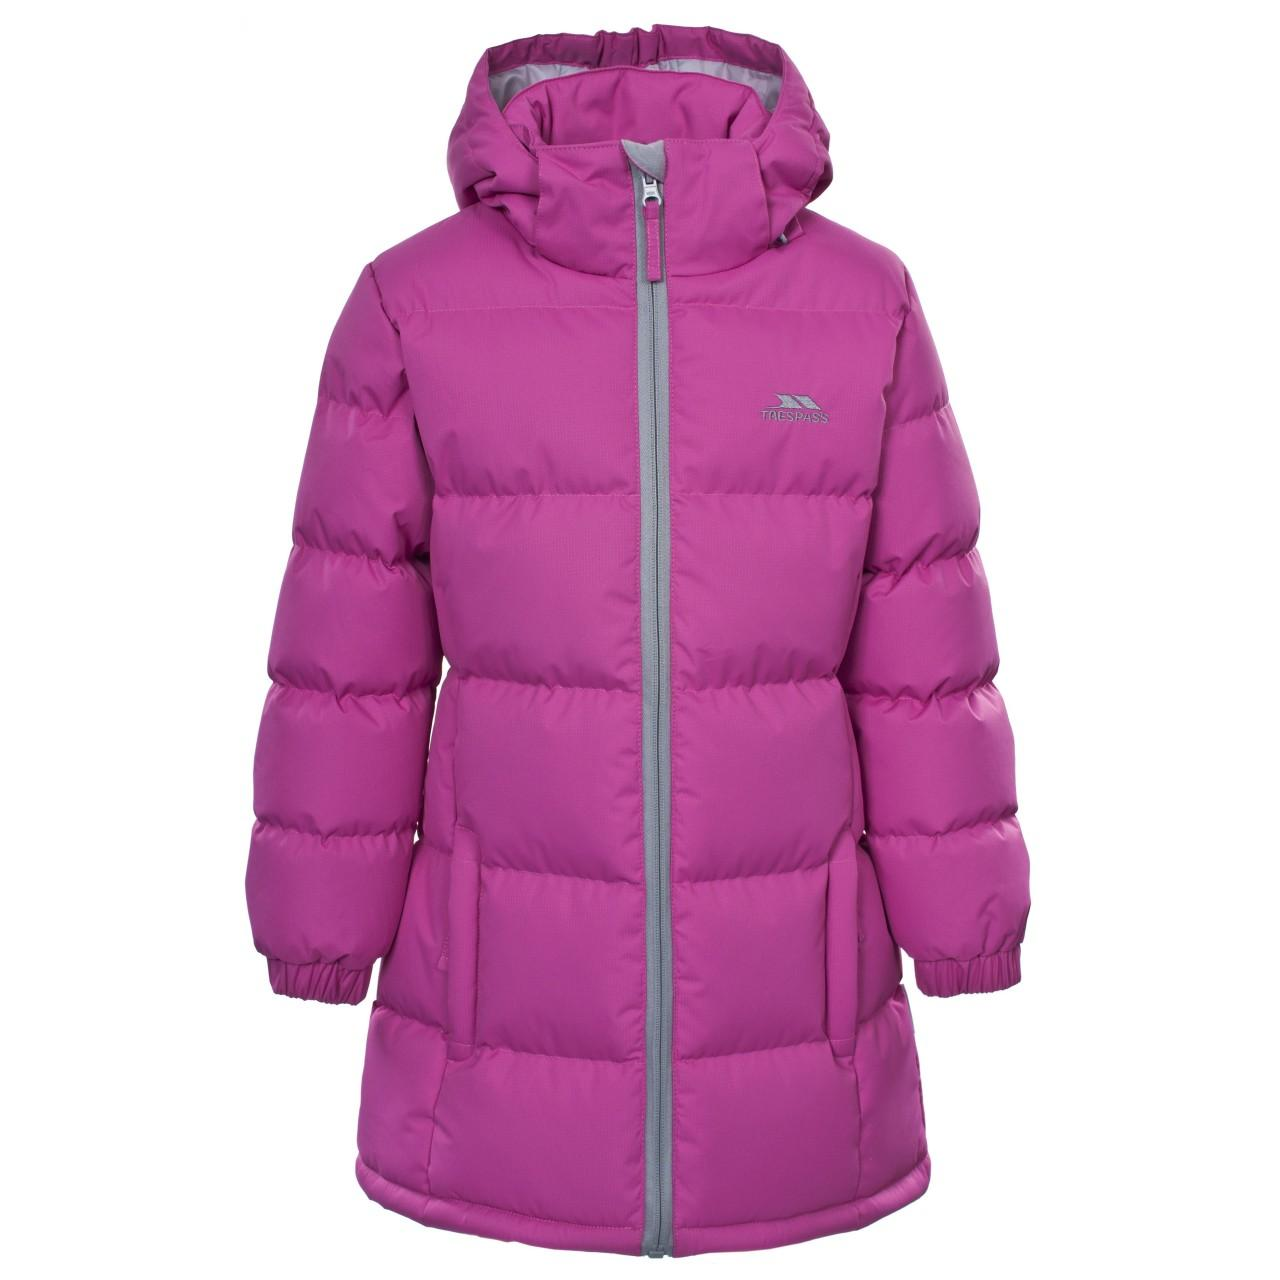 76b6d3a10 Trespass Tiffy Kid's Waterproof Down Jacket